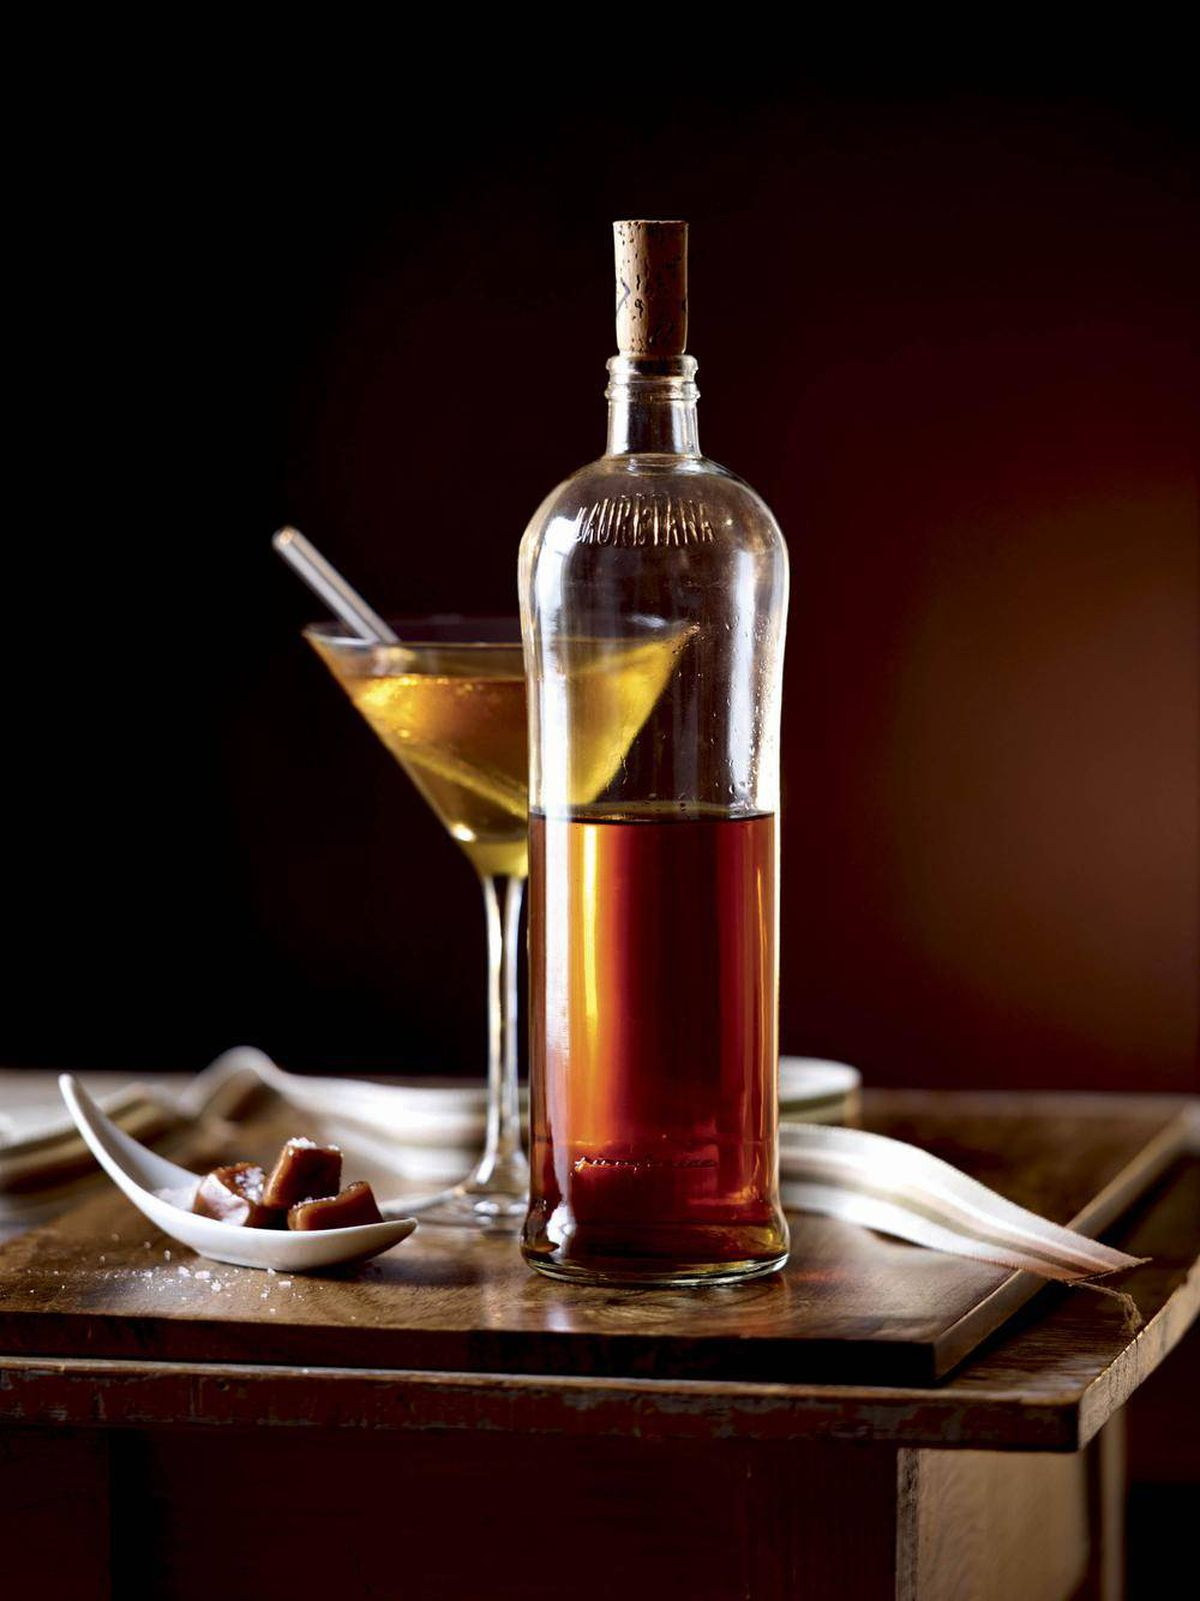 676a9f7d3 Homemade liqueurs offer huge payoff with very little investment ...